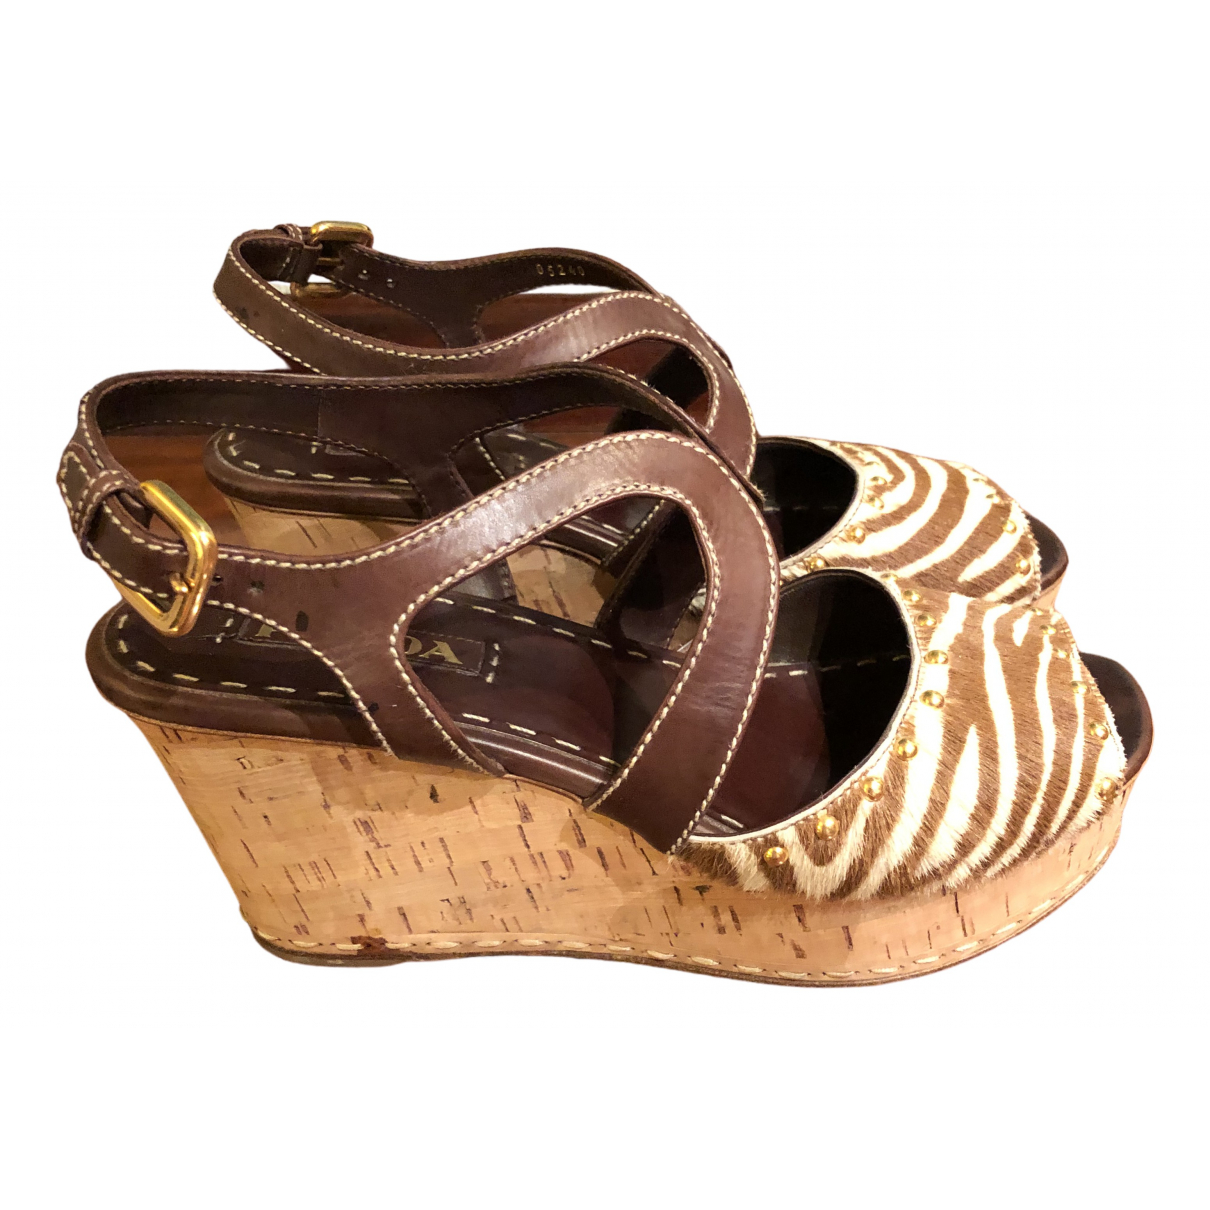 Prada \N Brown Leather Sandals for Women 39.5 EU